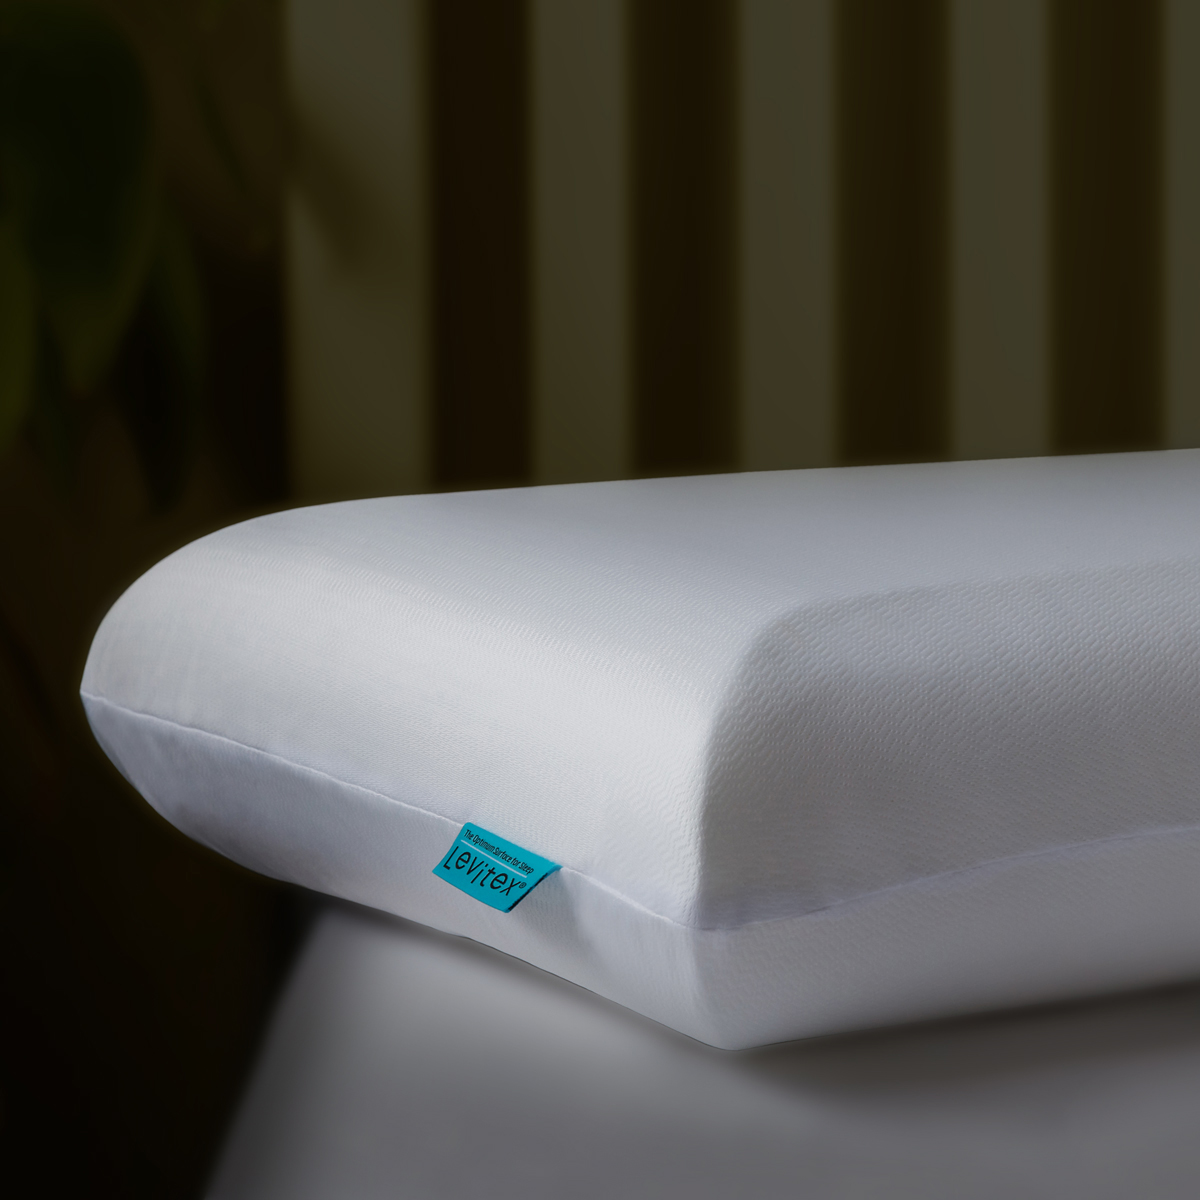 levitex foam for sleep posture